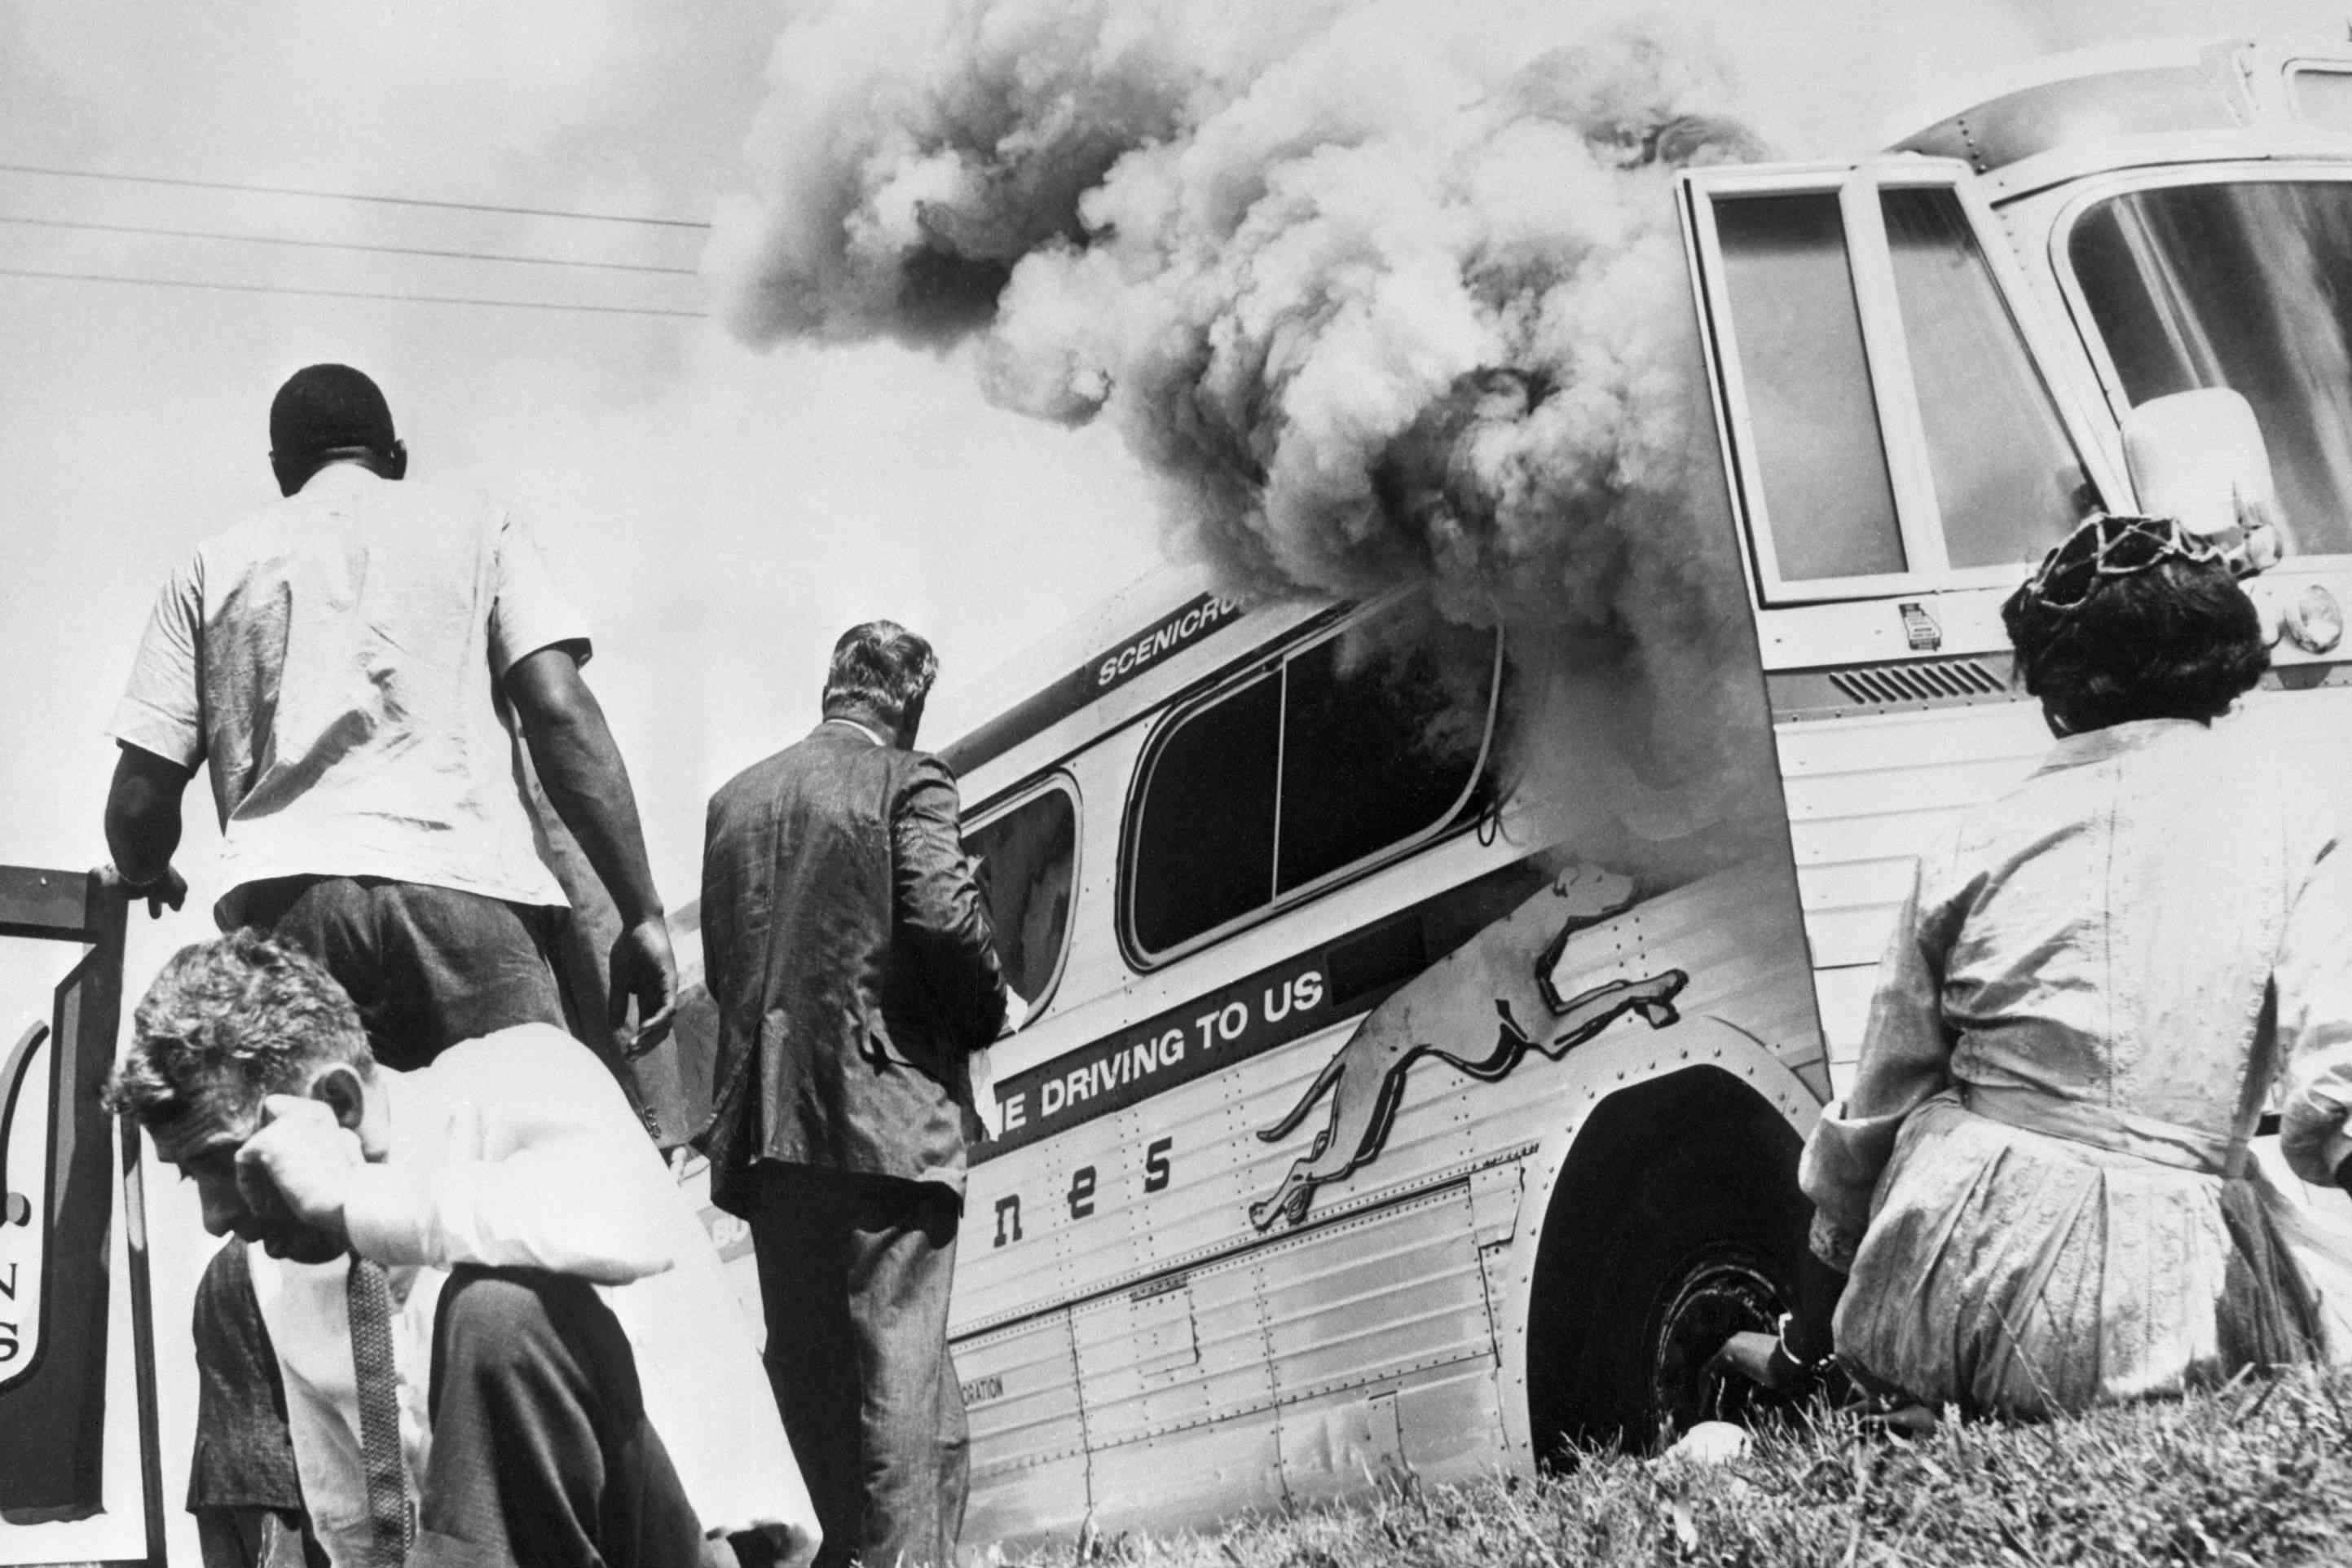 Freedom Riders sit and stand outside of their bus as smoke comes out of the windows